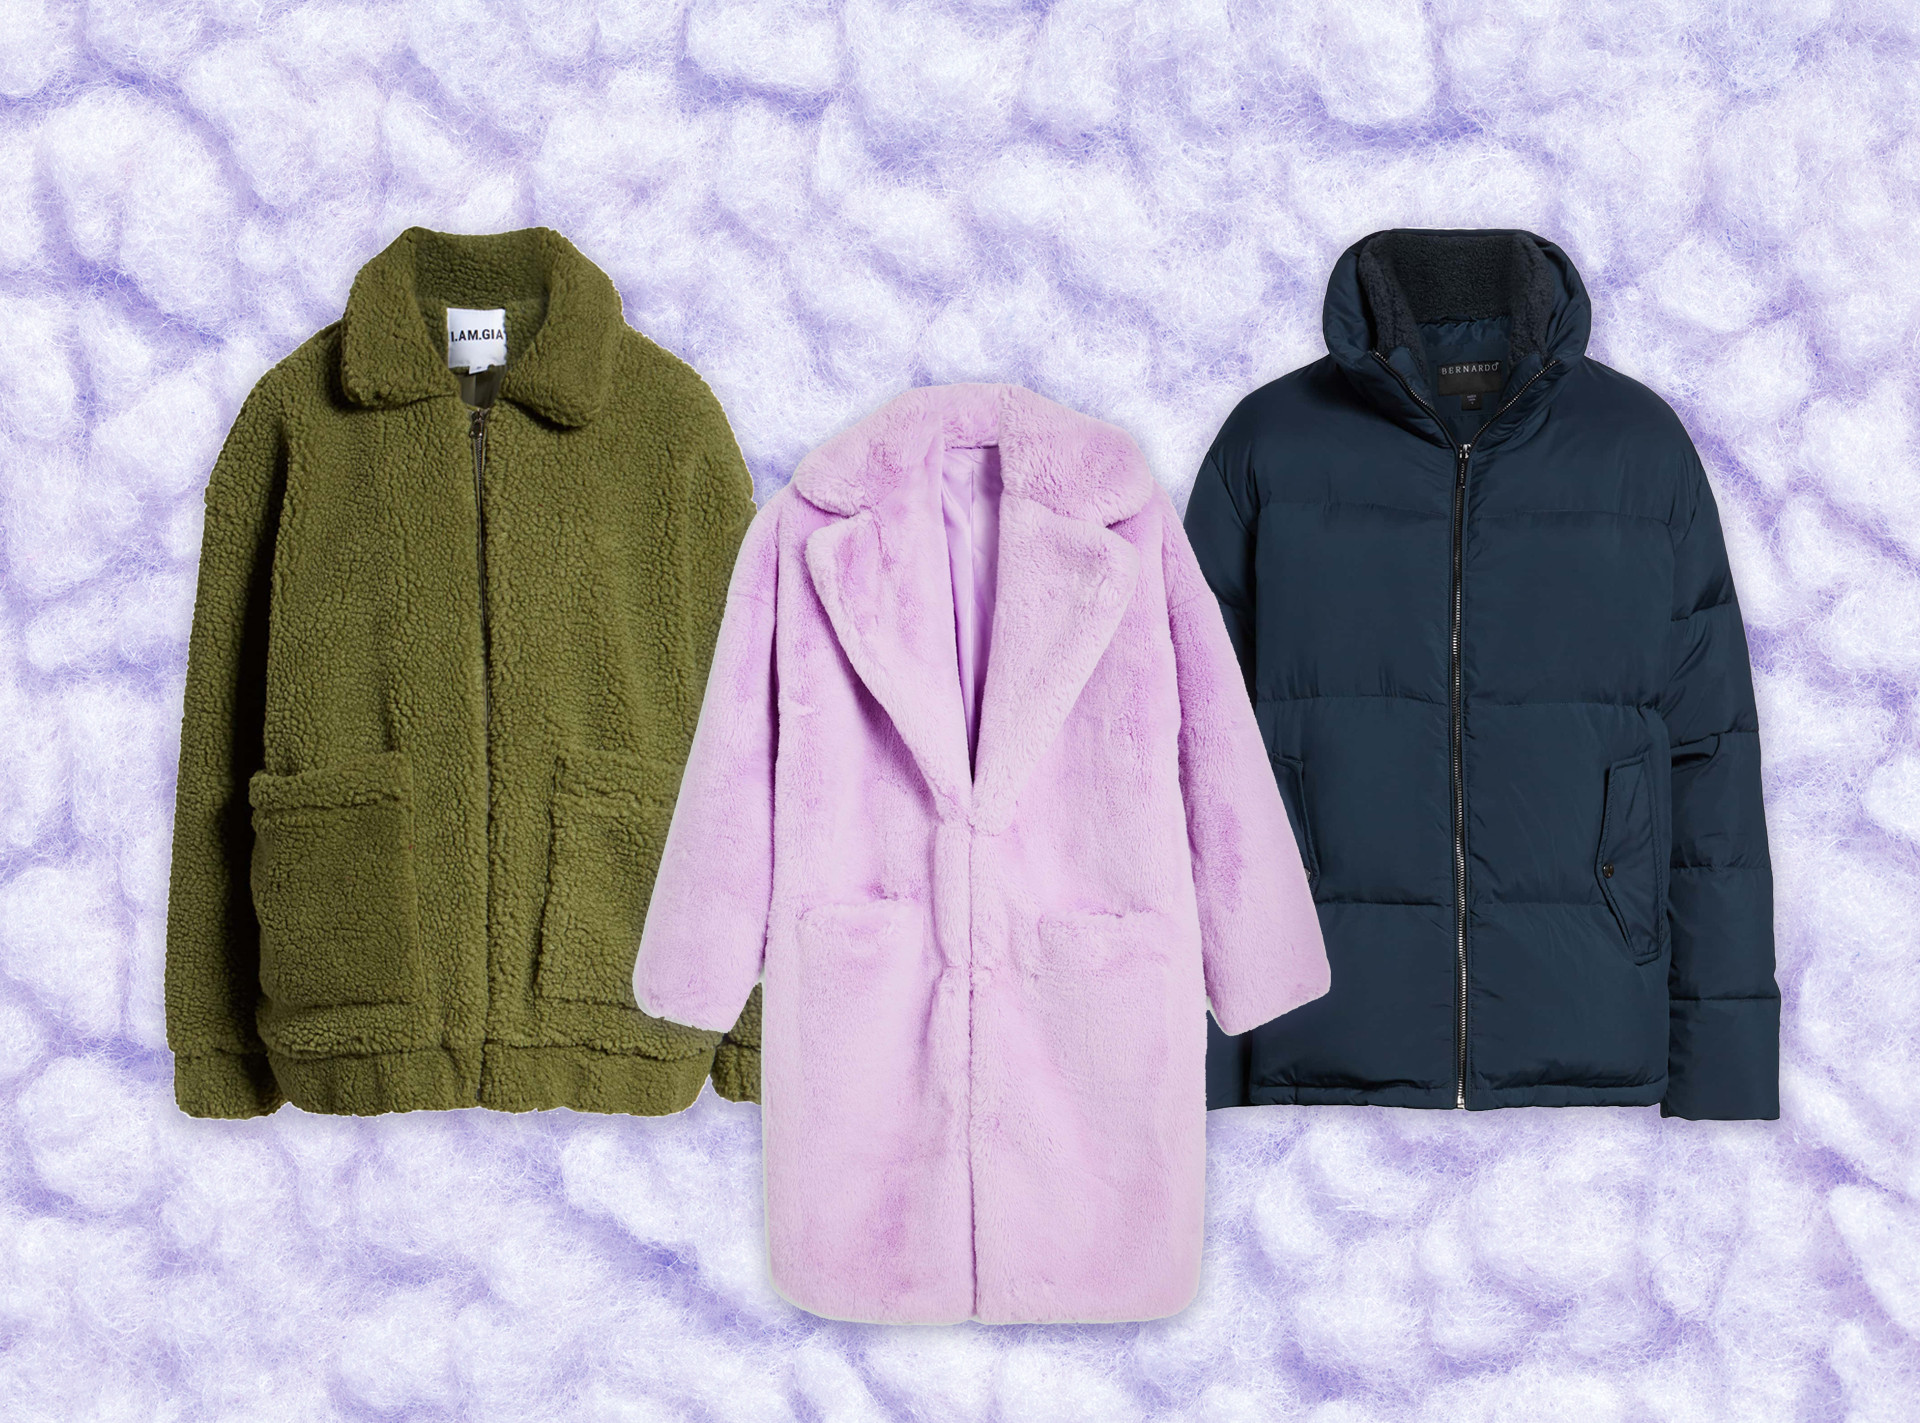 E-Comm: Oversized Jackets for the It Girl